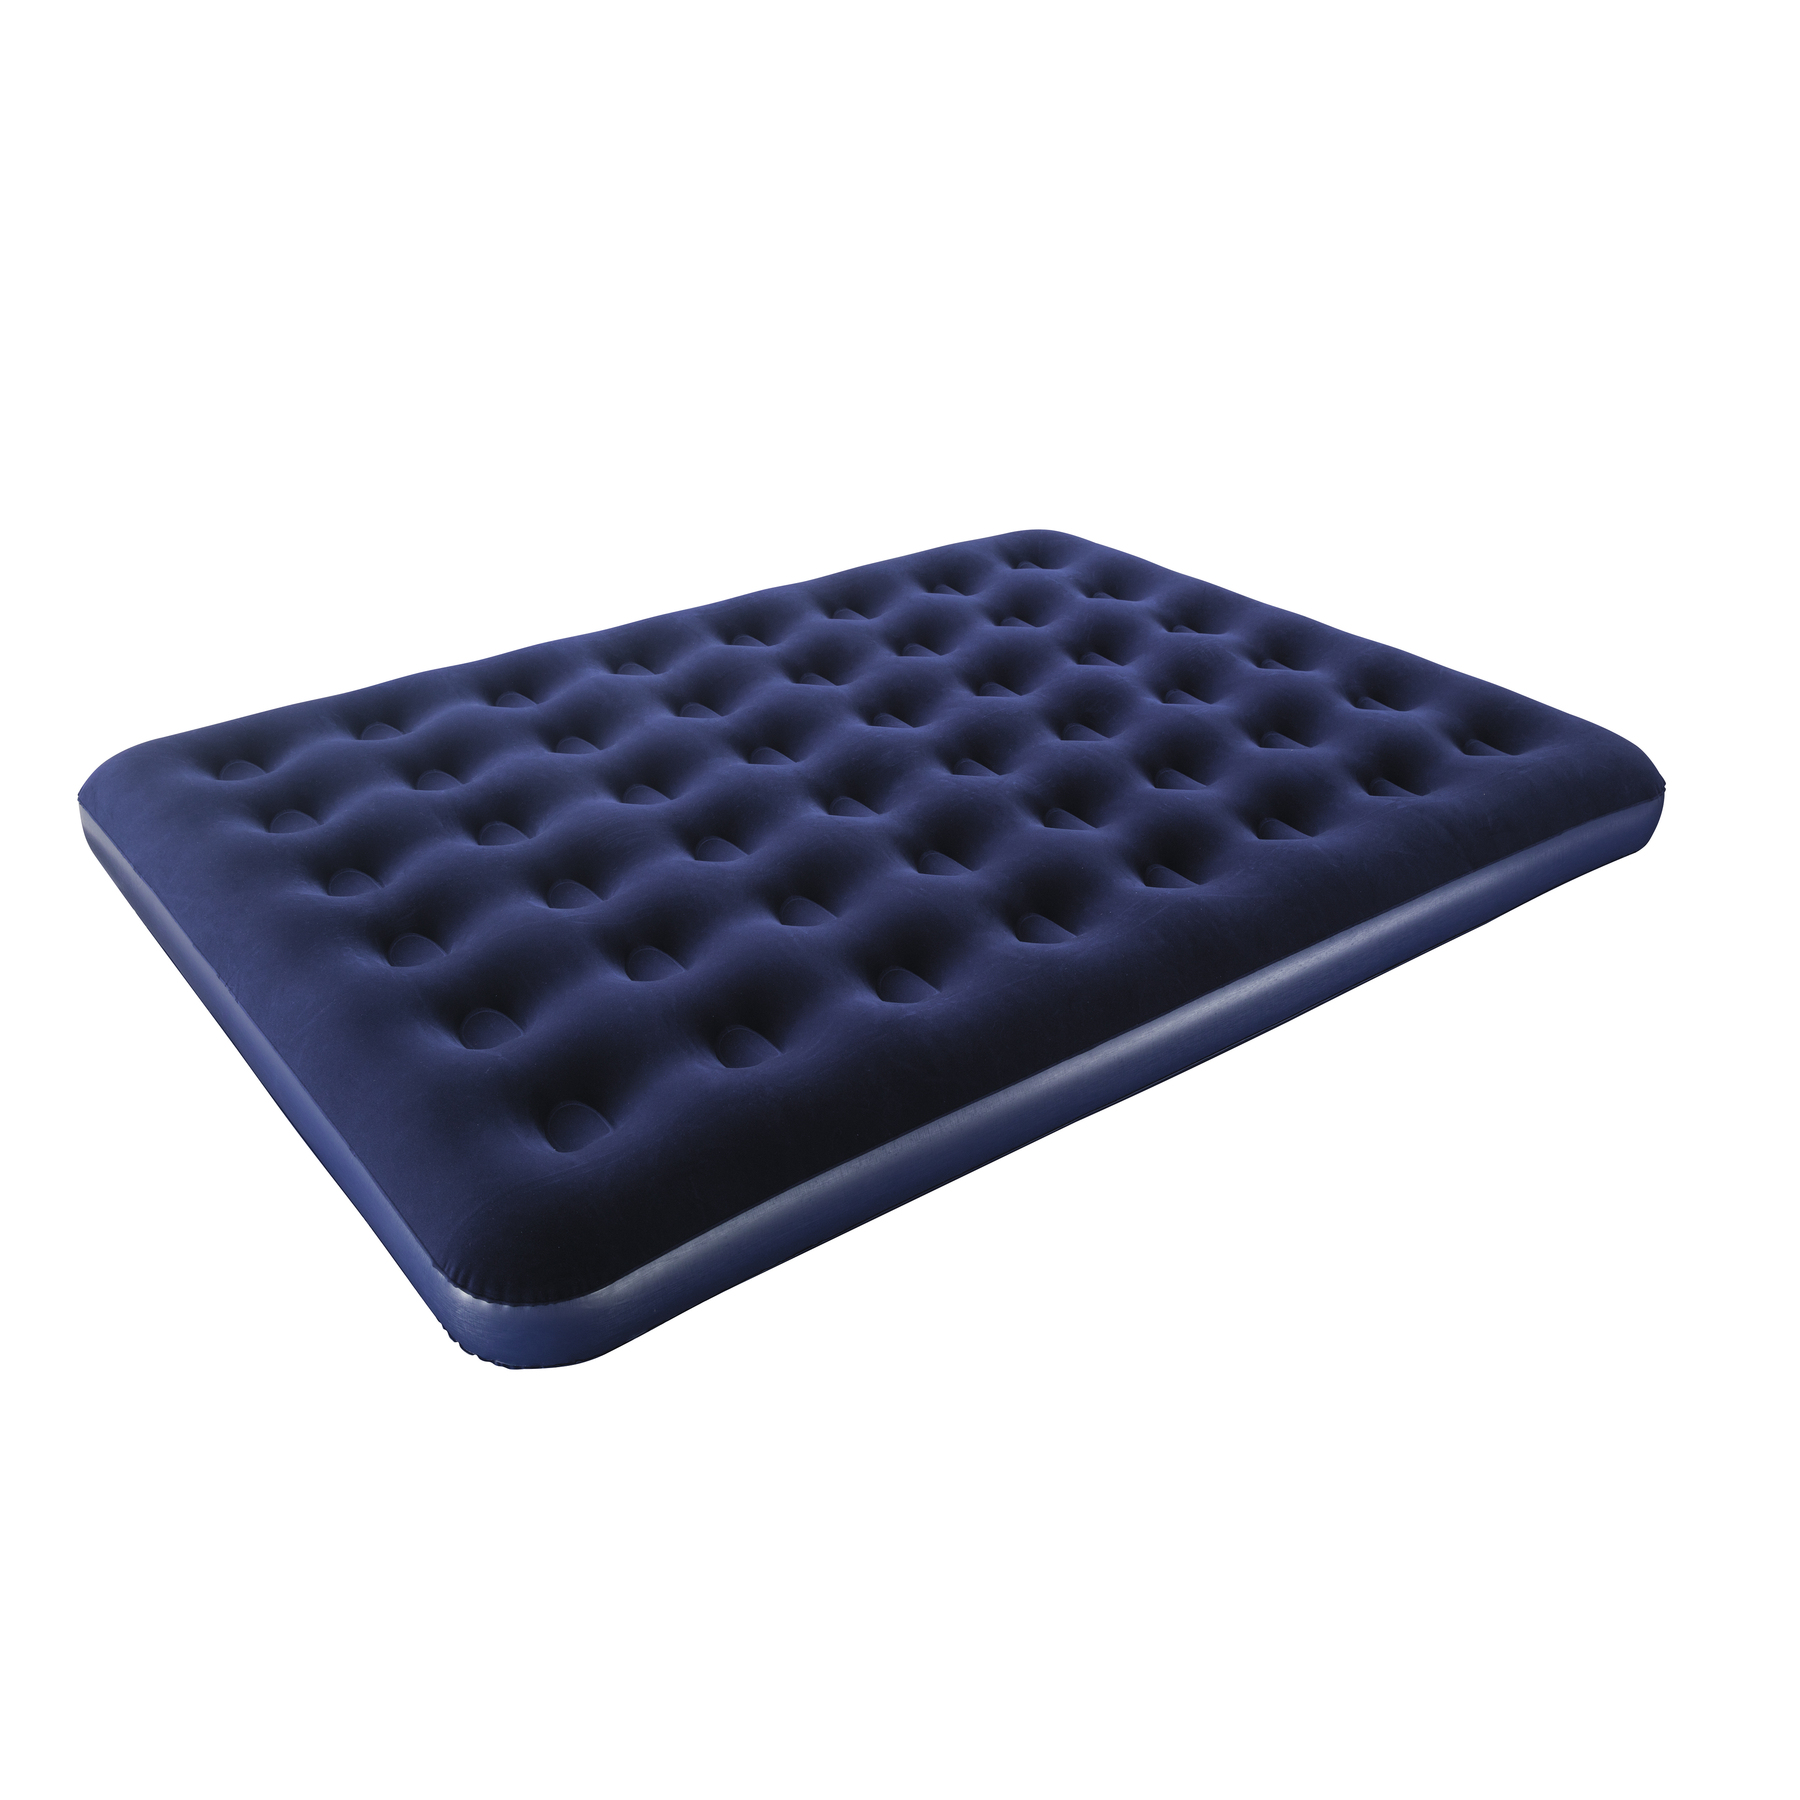 Mattress Inflatable Double флокированный 203x152x22 Cm, Blue, Bestway Queen, Item No. 67003